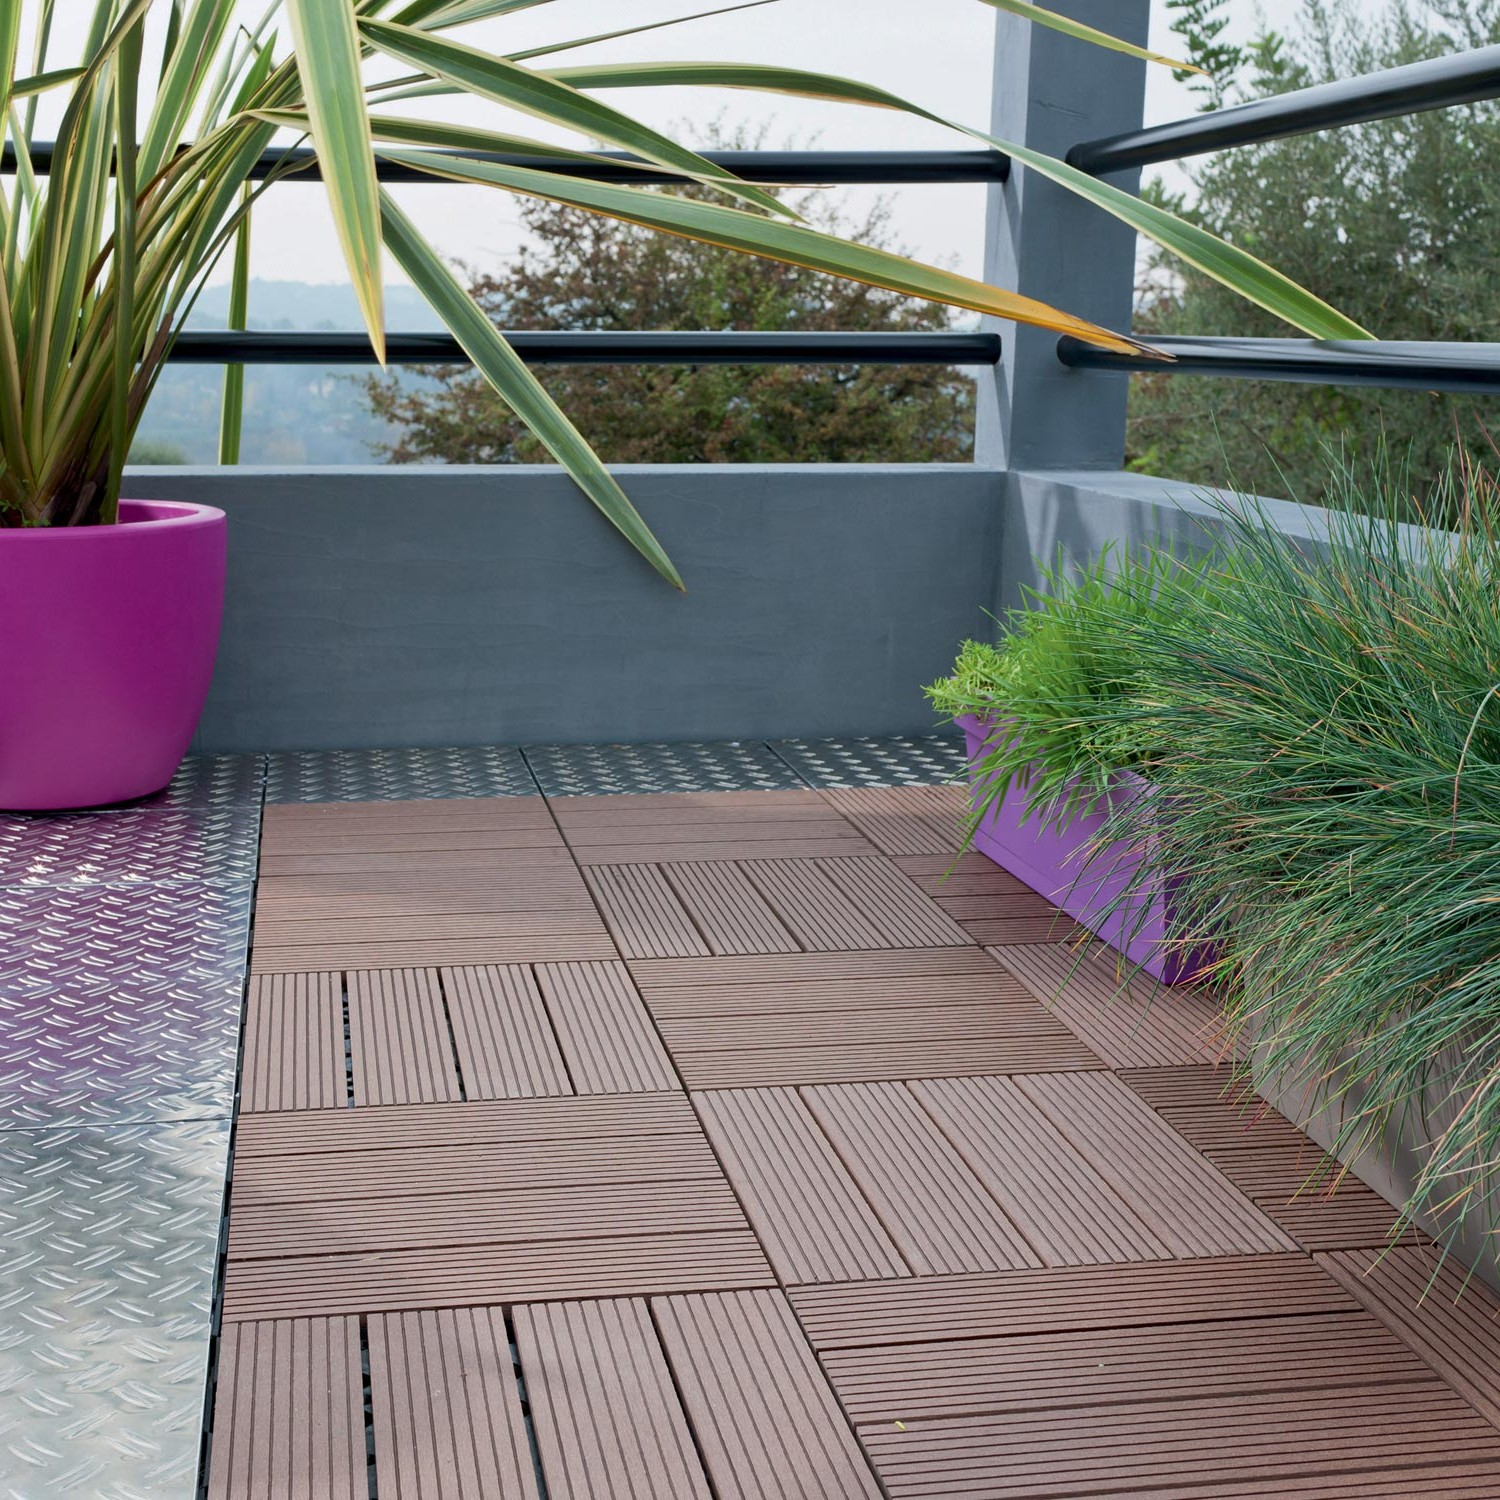 Carrelage clipsable pour balcon carrelage id es de for Carrelage clipsable